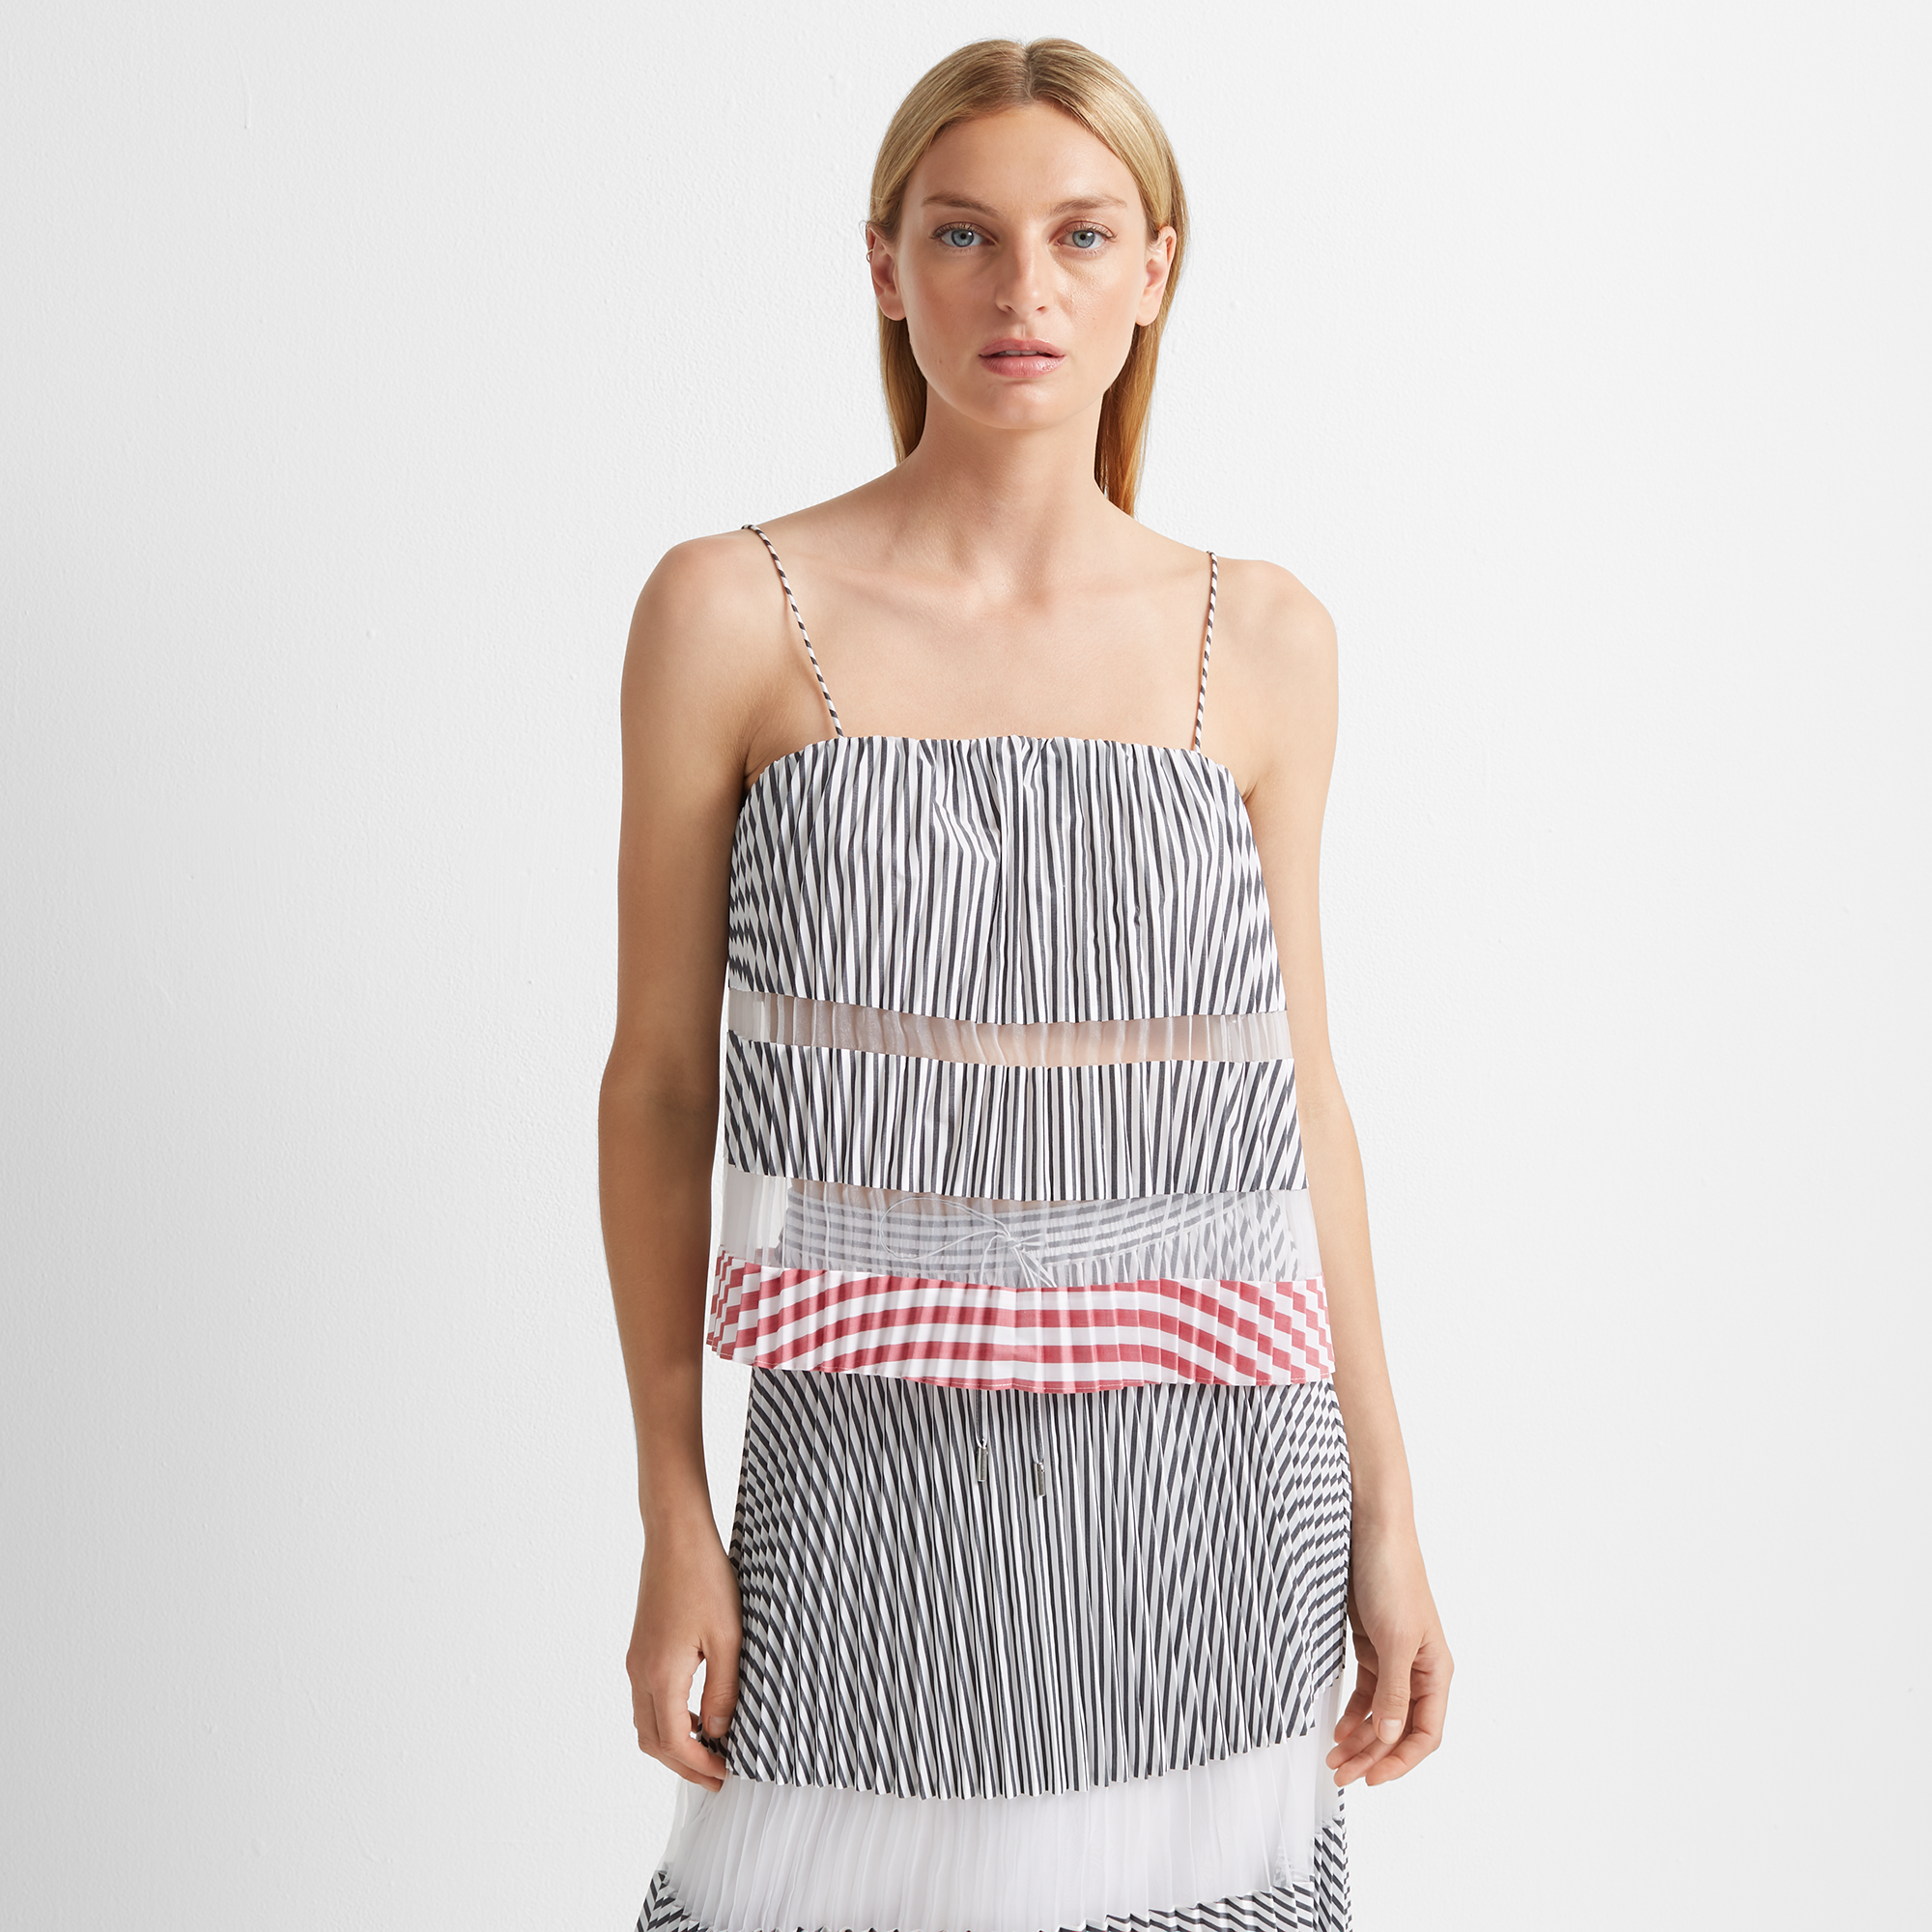 Sunburst Tank Multi Stripe.jpg